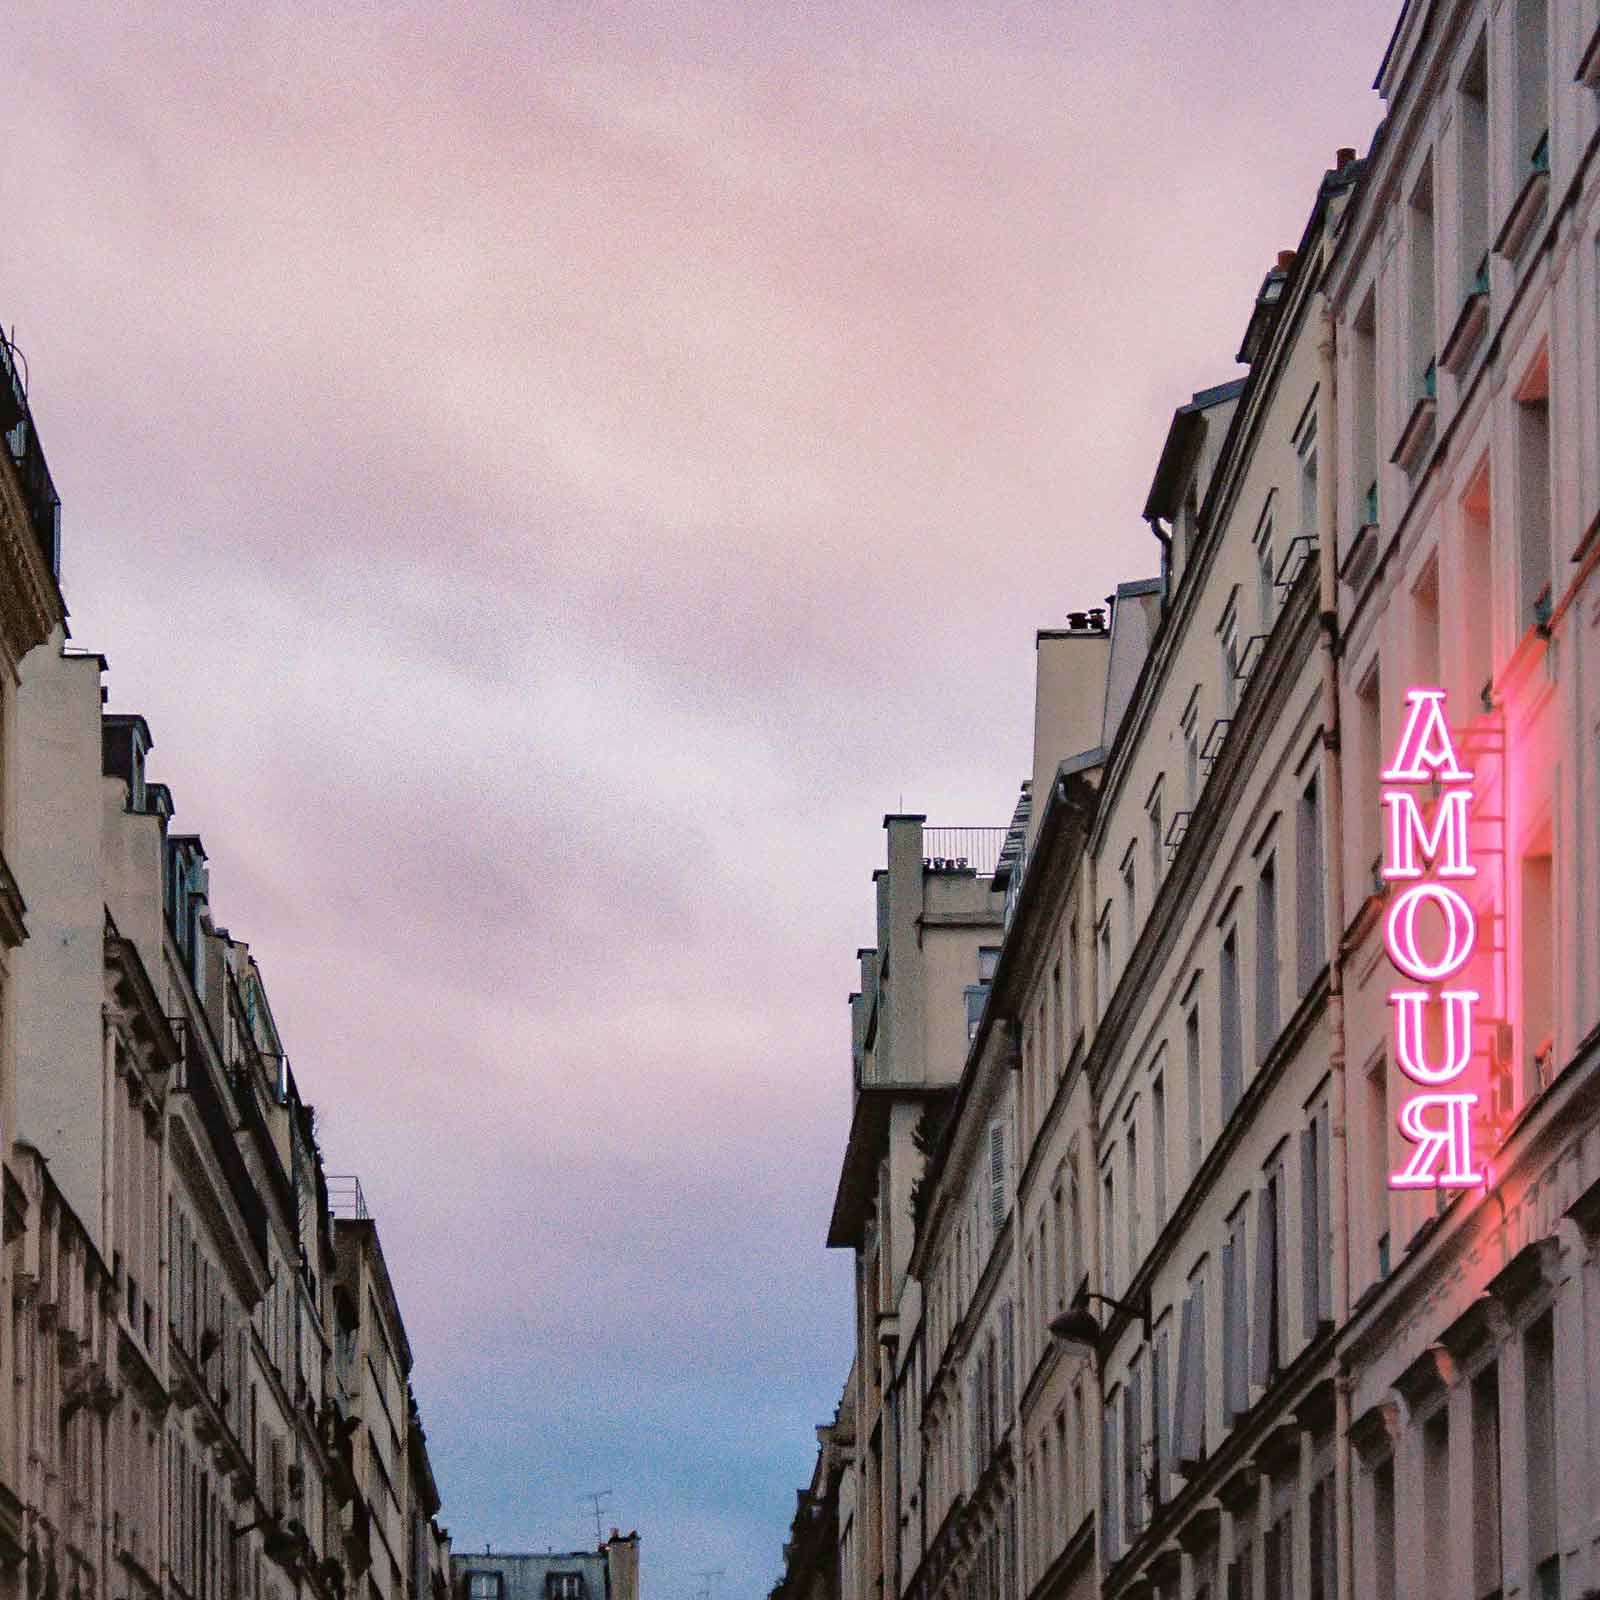 "Photo looking down a street between 2 buildings. On the building to the right, there is a pink neon sign that says ""Amour."""